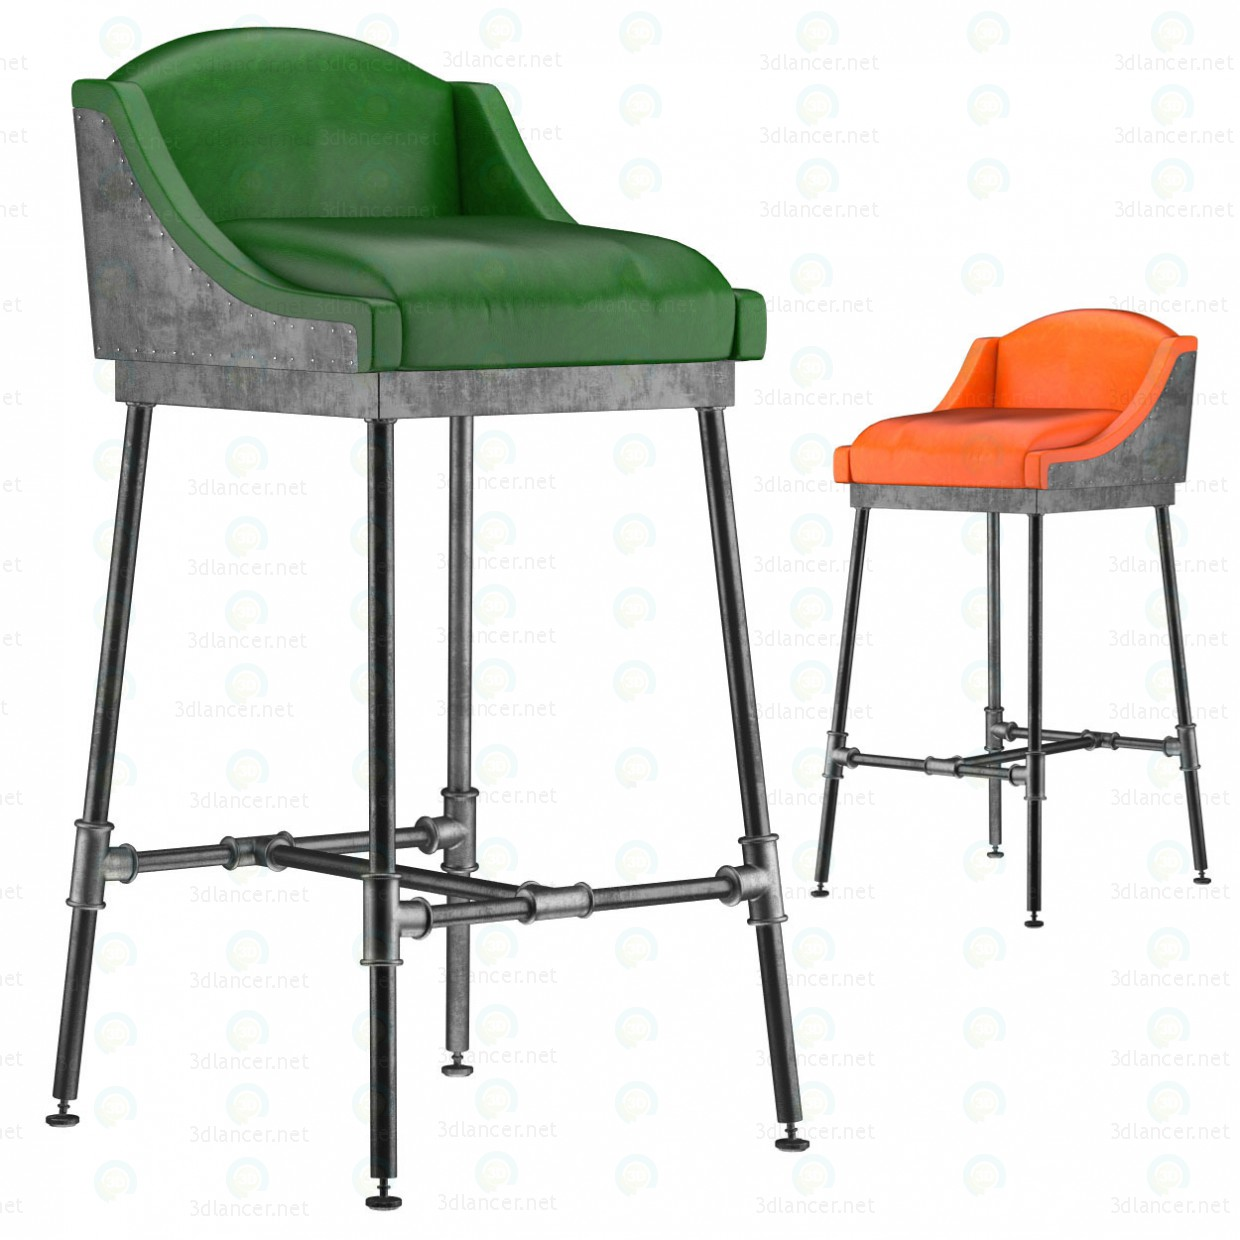 IRON SCAFFOLD BAR STOOL (6 colors) paid 3d model by artistos preview